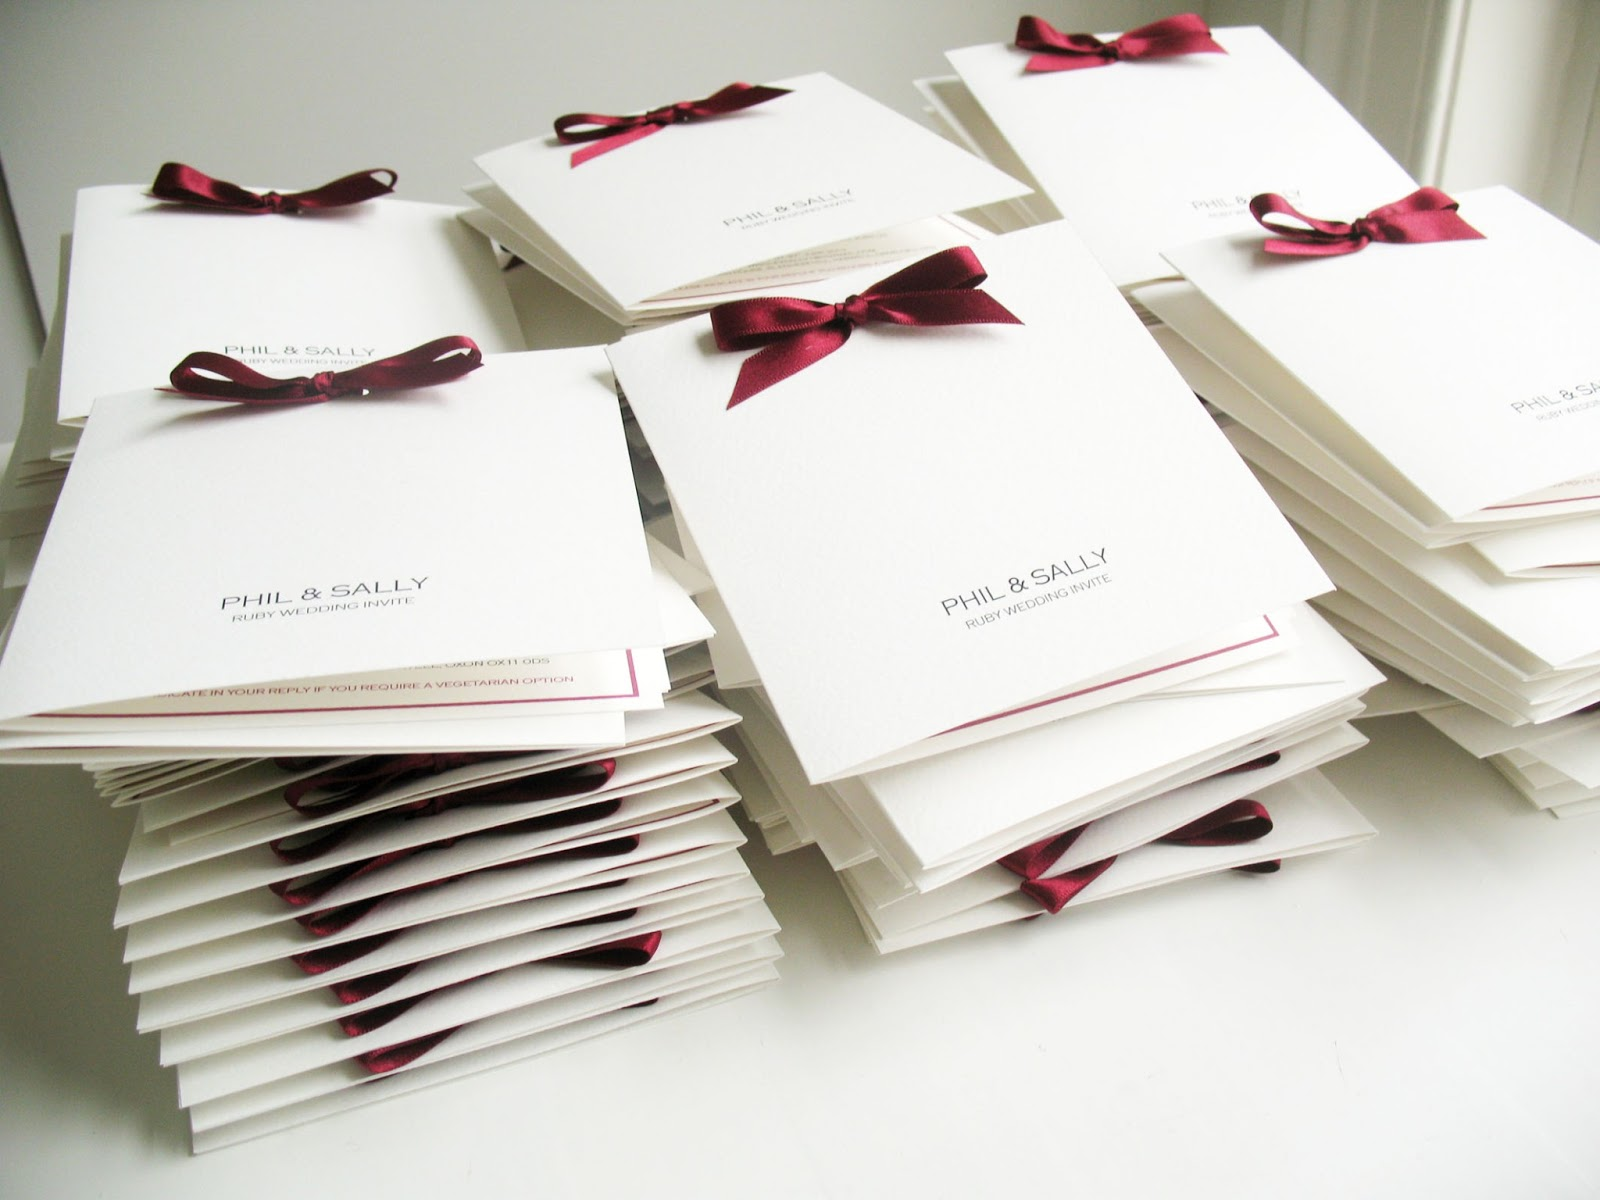 Inspiration for weddings invitations and stationery burgundy